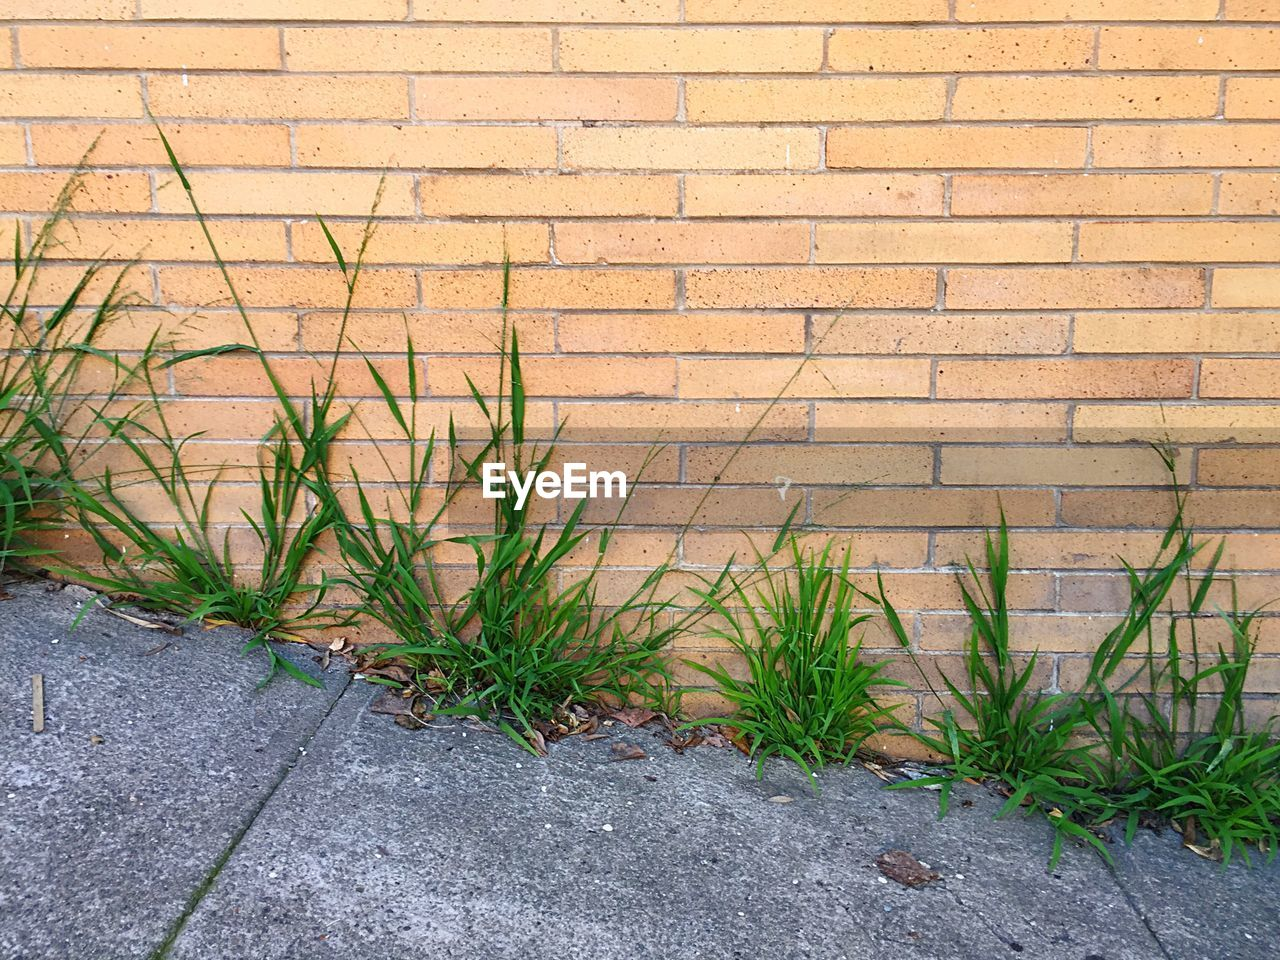 Grass Growing On Footpath Against Brick Wall